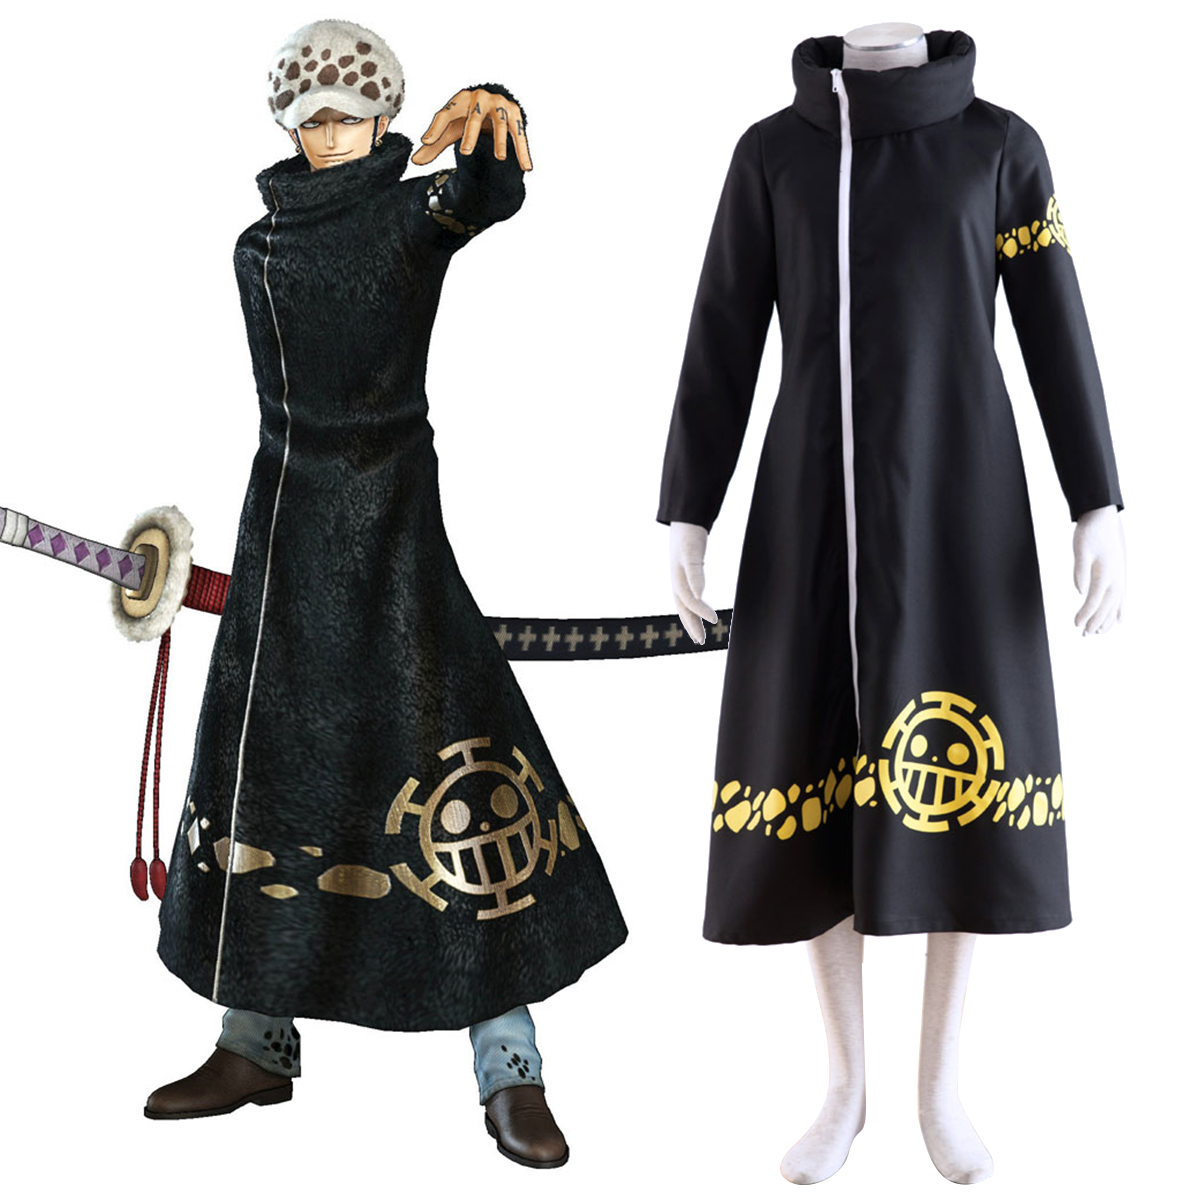 One Piece Trafalgar Law 2 Anime Cosplay Costumes Outfit